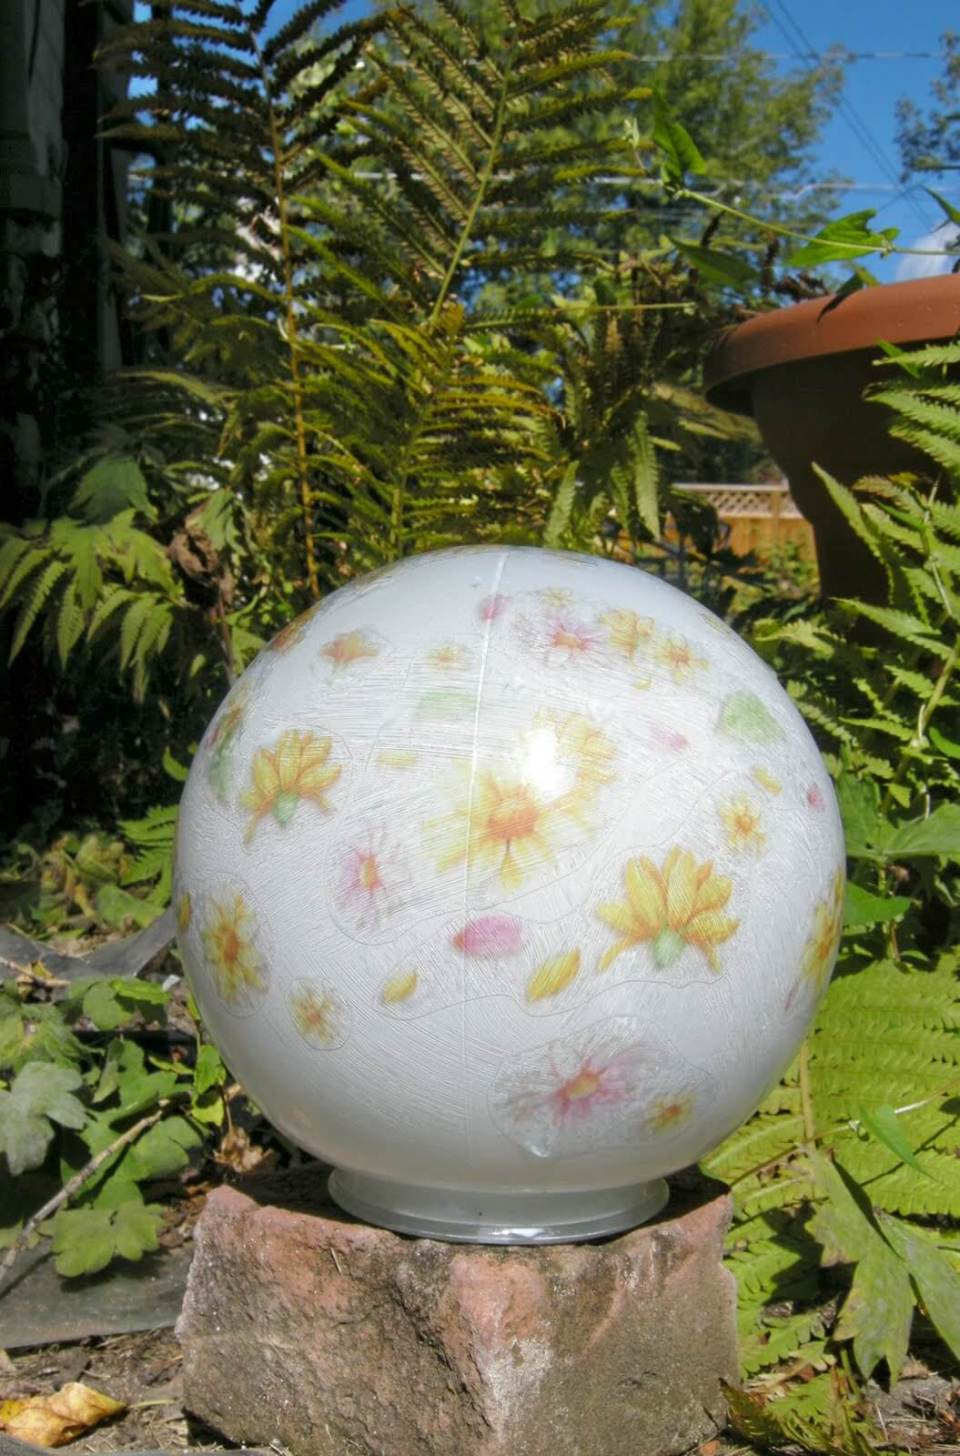 Floral DIY Garden Ball Idea | DIY Garden Ball Ideas